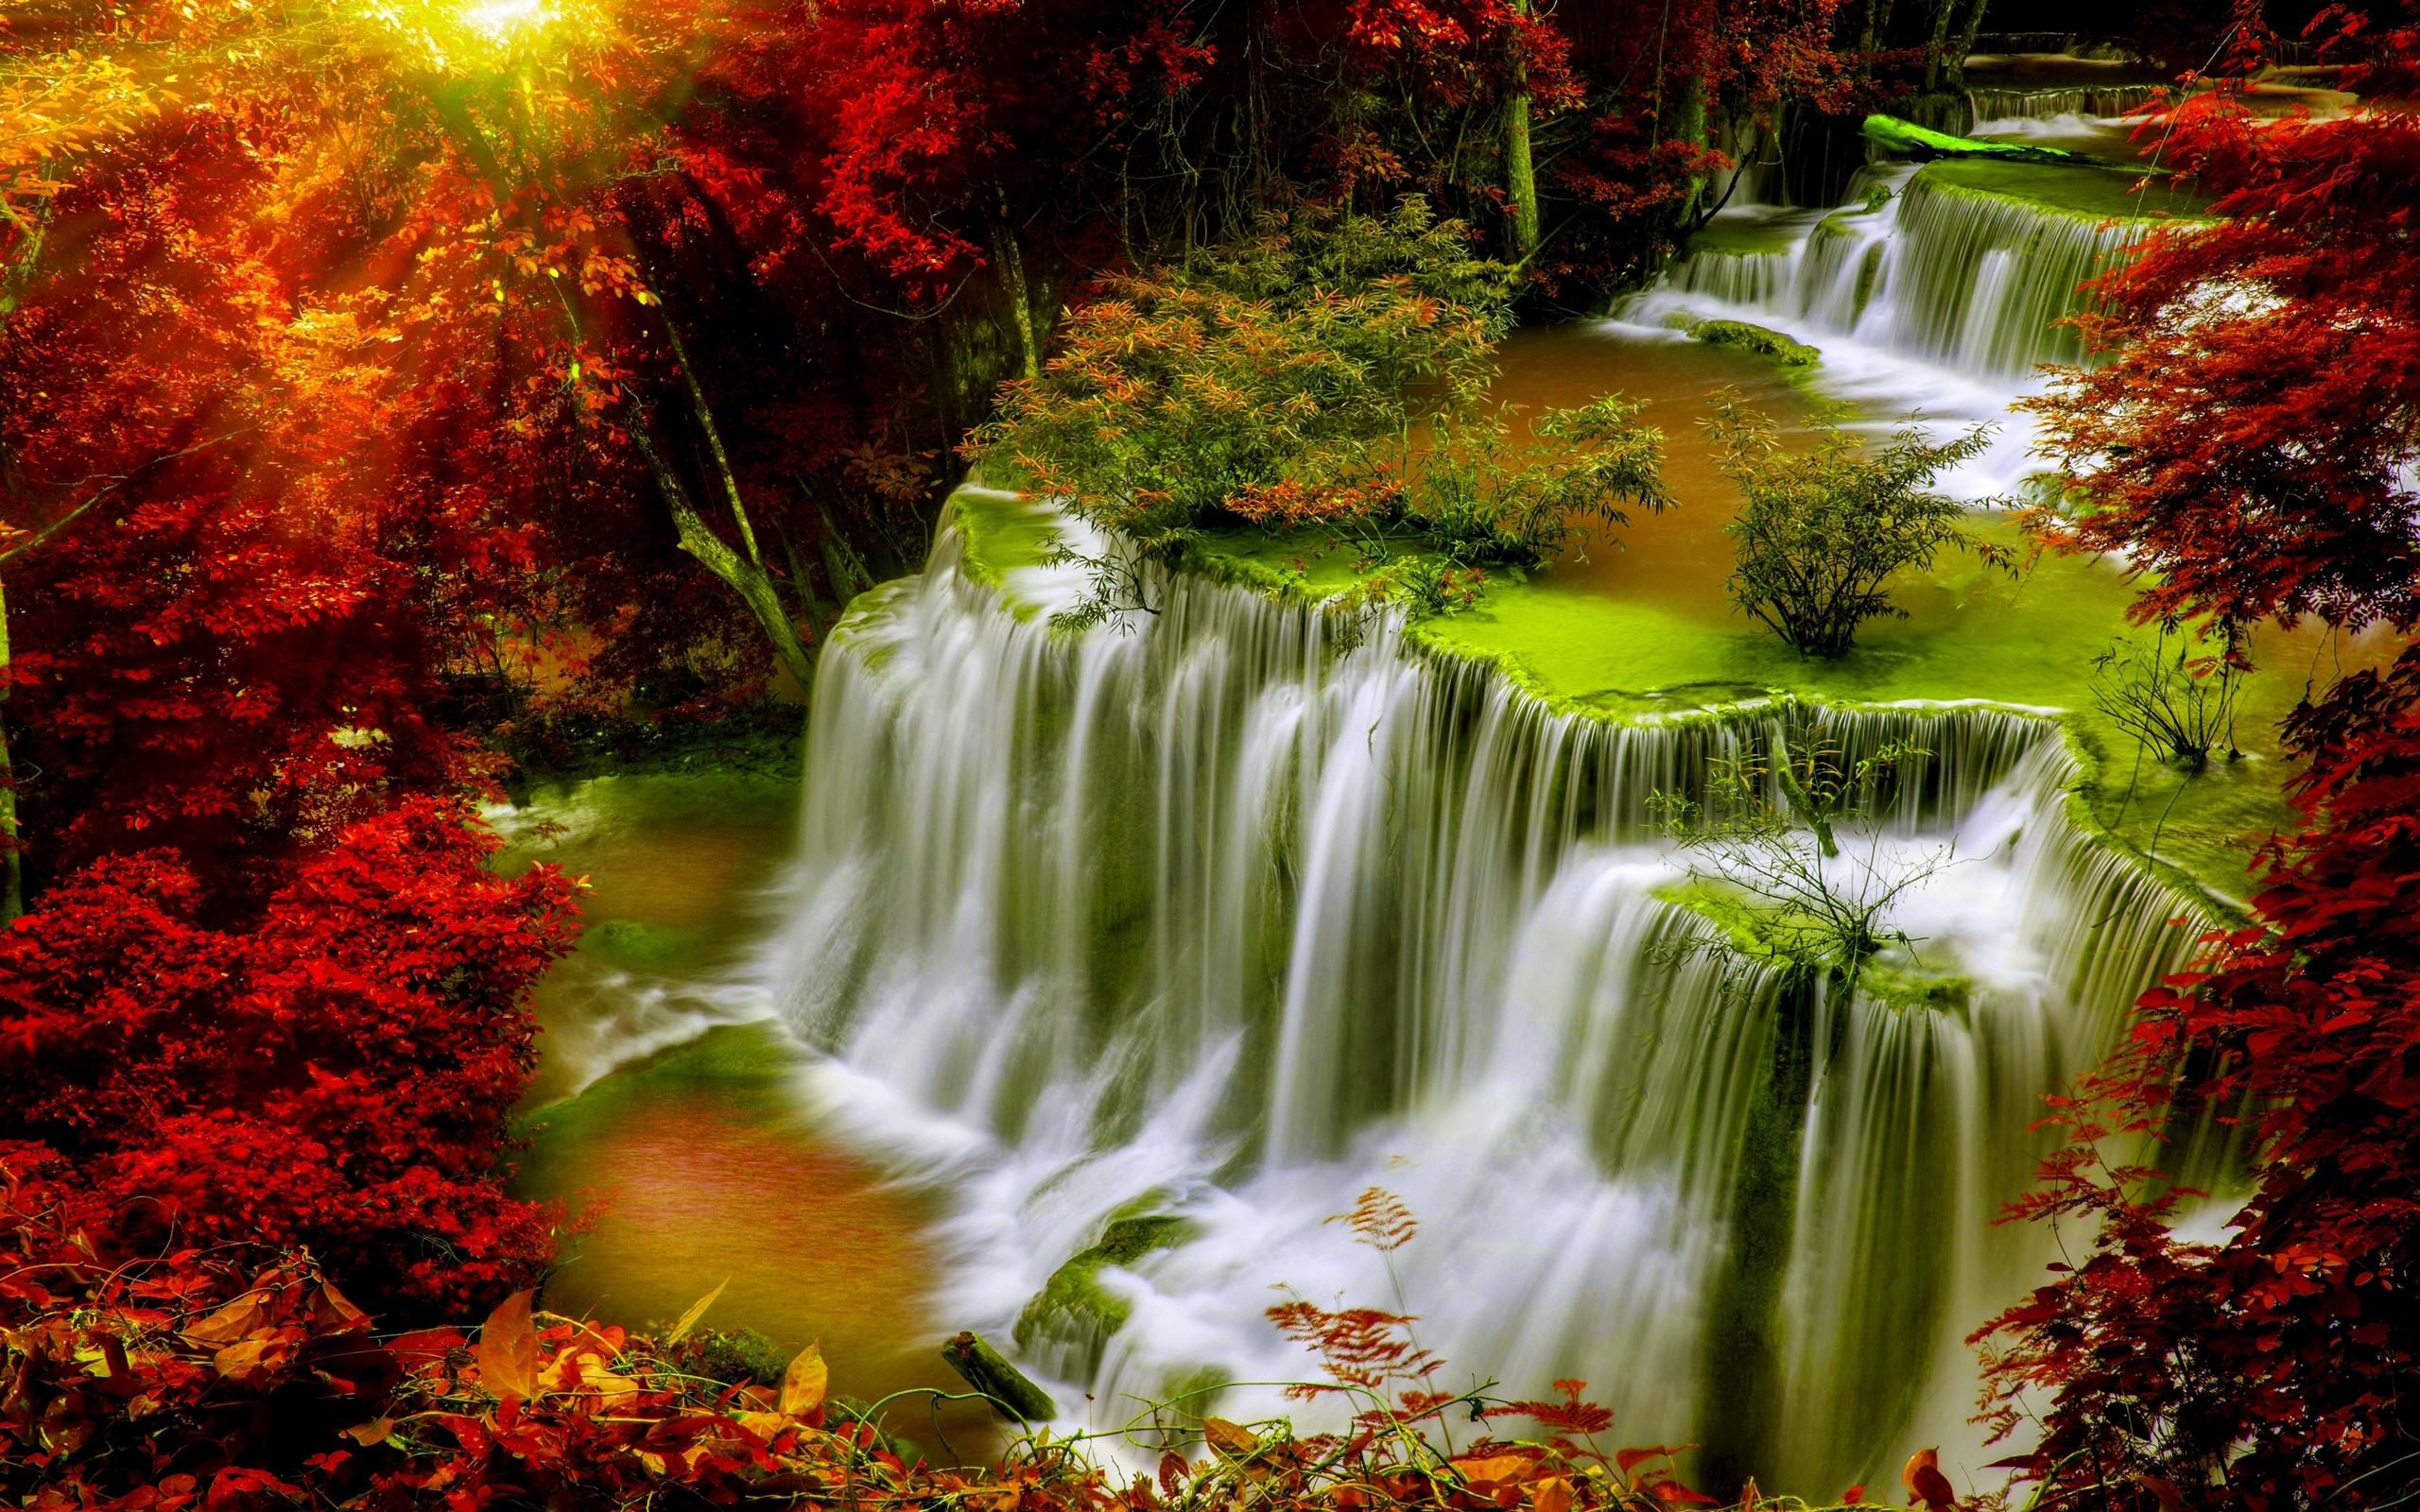 Full Screen Desktop Fall Leaves Wallpaper Cascade Falls Autumn Forest Red Leaves Sunlight Desktop Hd